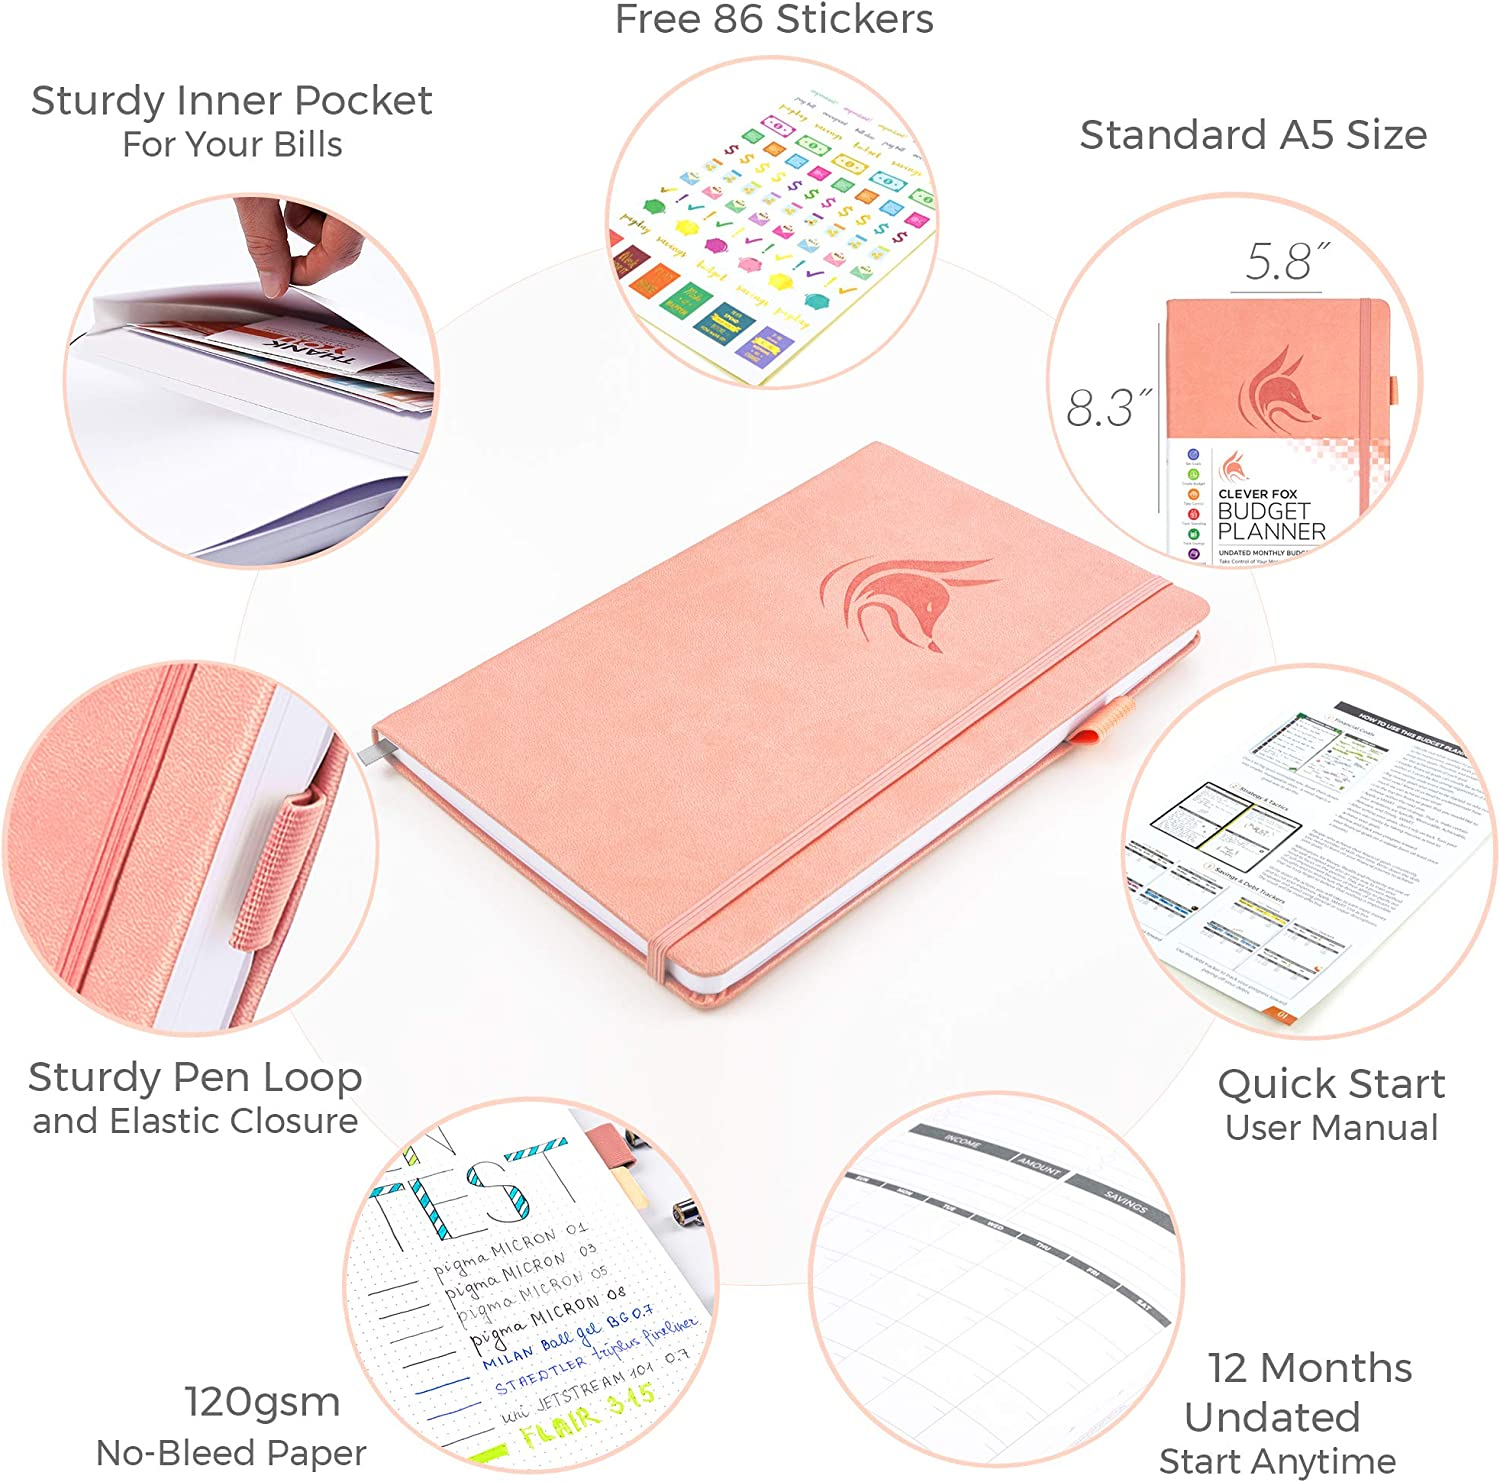 Expense Tracker Notebook Start Anytime Monthly Budgeting Journal 14.25 X 21 cm Clever Fox Budget Planner A5 undatiert Undated Pfirsichrosa Finance Planner /& Accounts Book to Take Control of Your Money